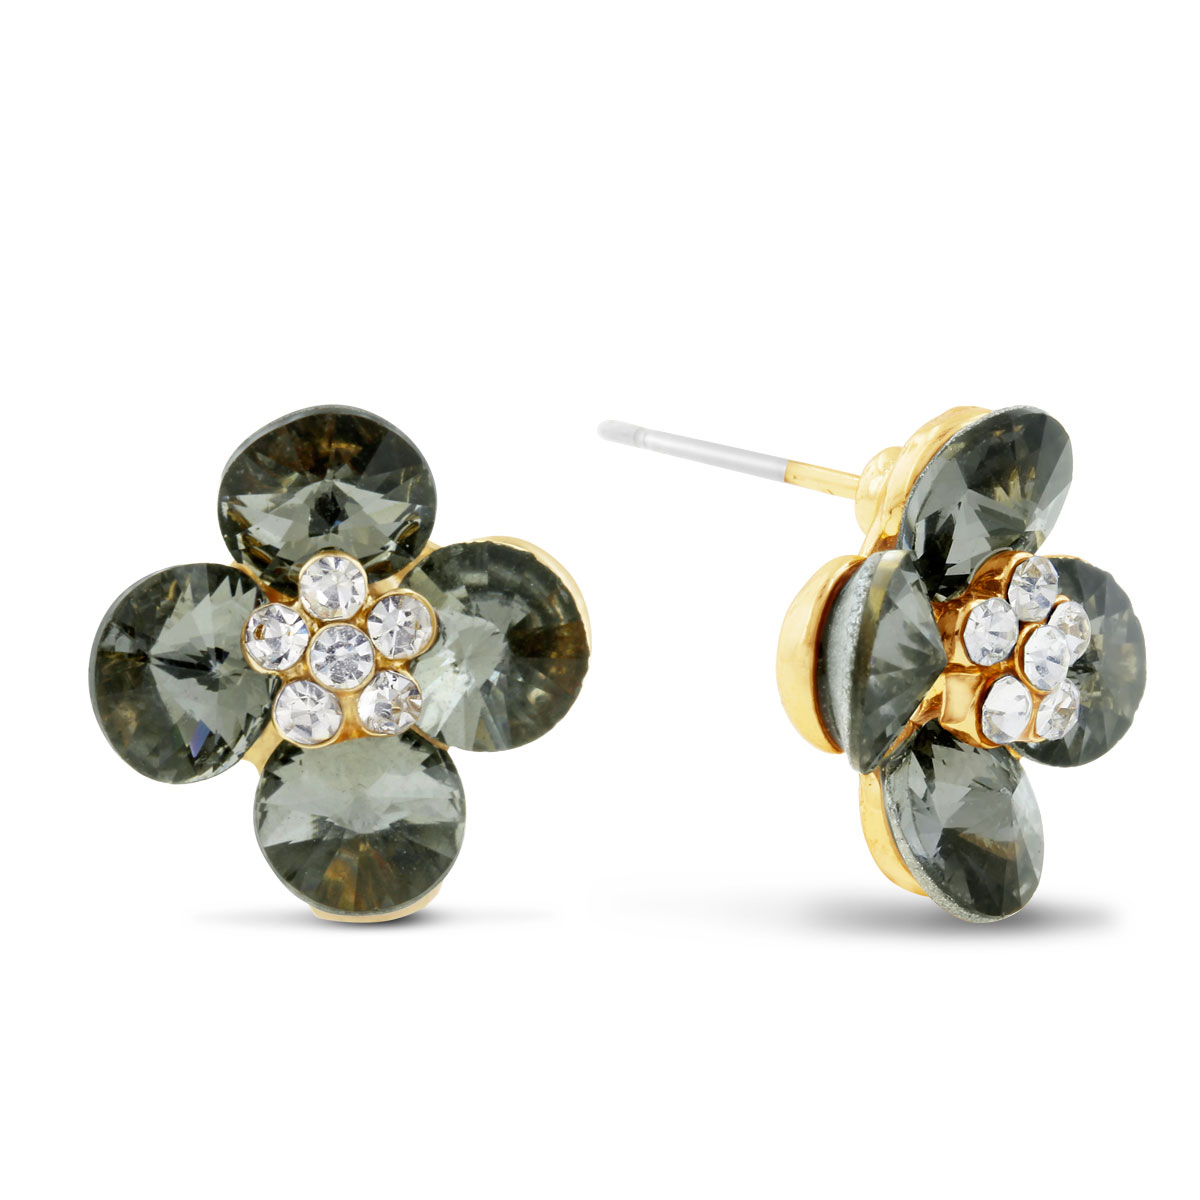 Blooming Flower Swarovski Elements Stud Earrings, Pushbacks by Su